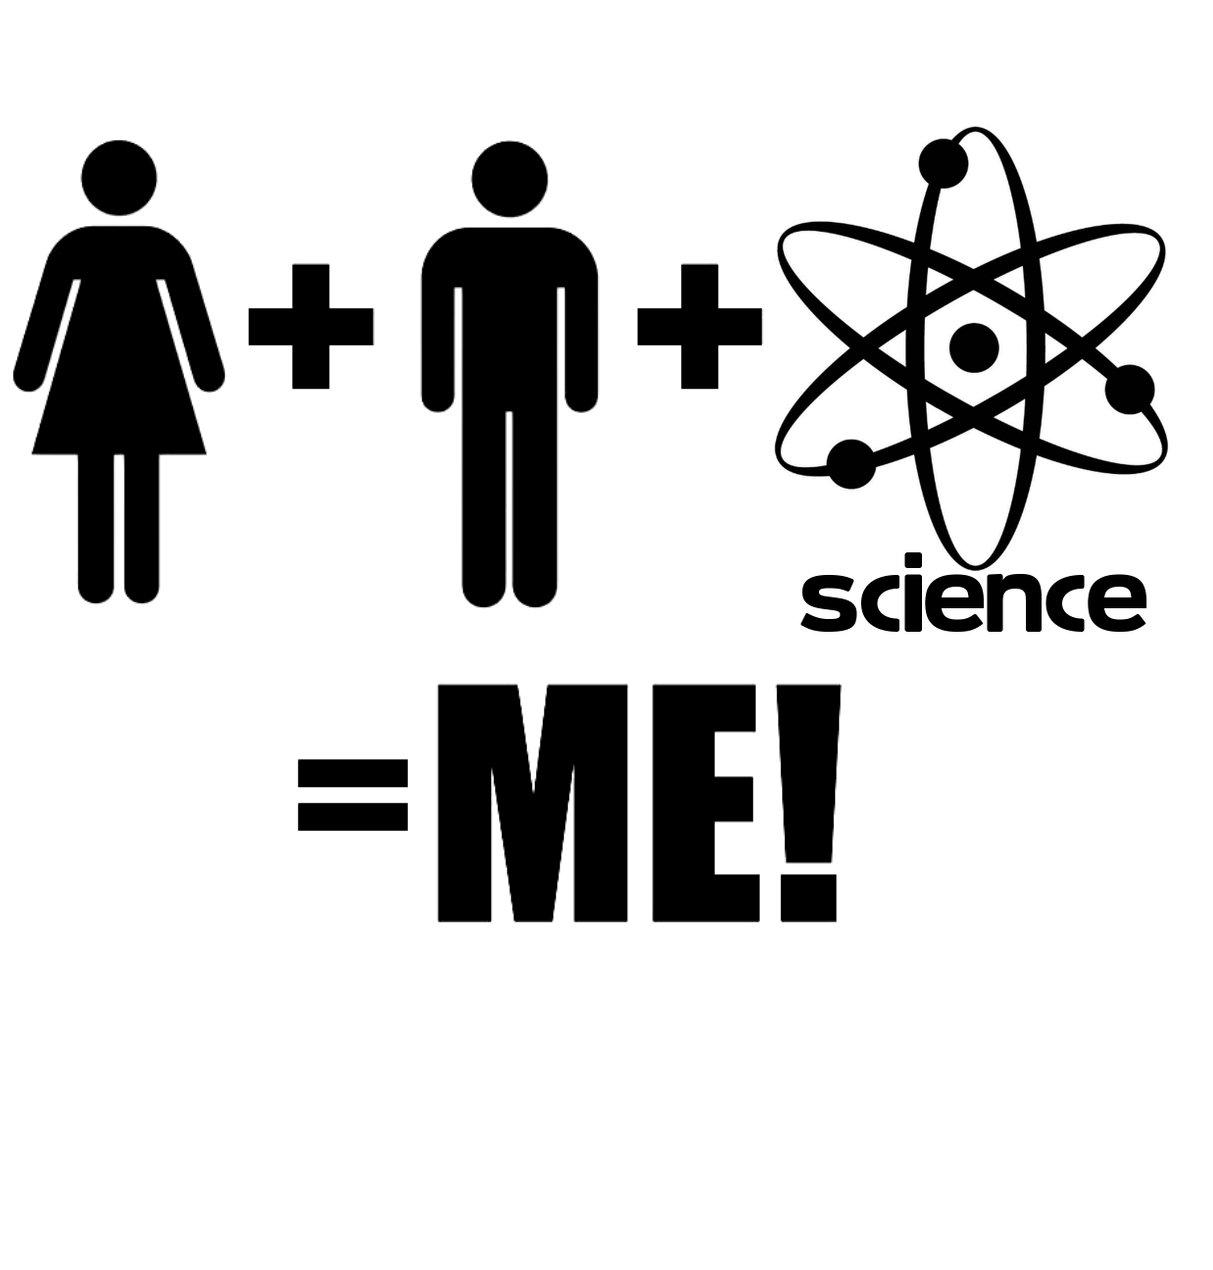 Mommy plus daddy plus science equals me (with atom symbol) onesie design